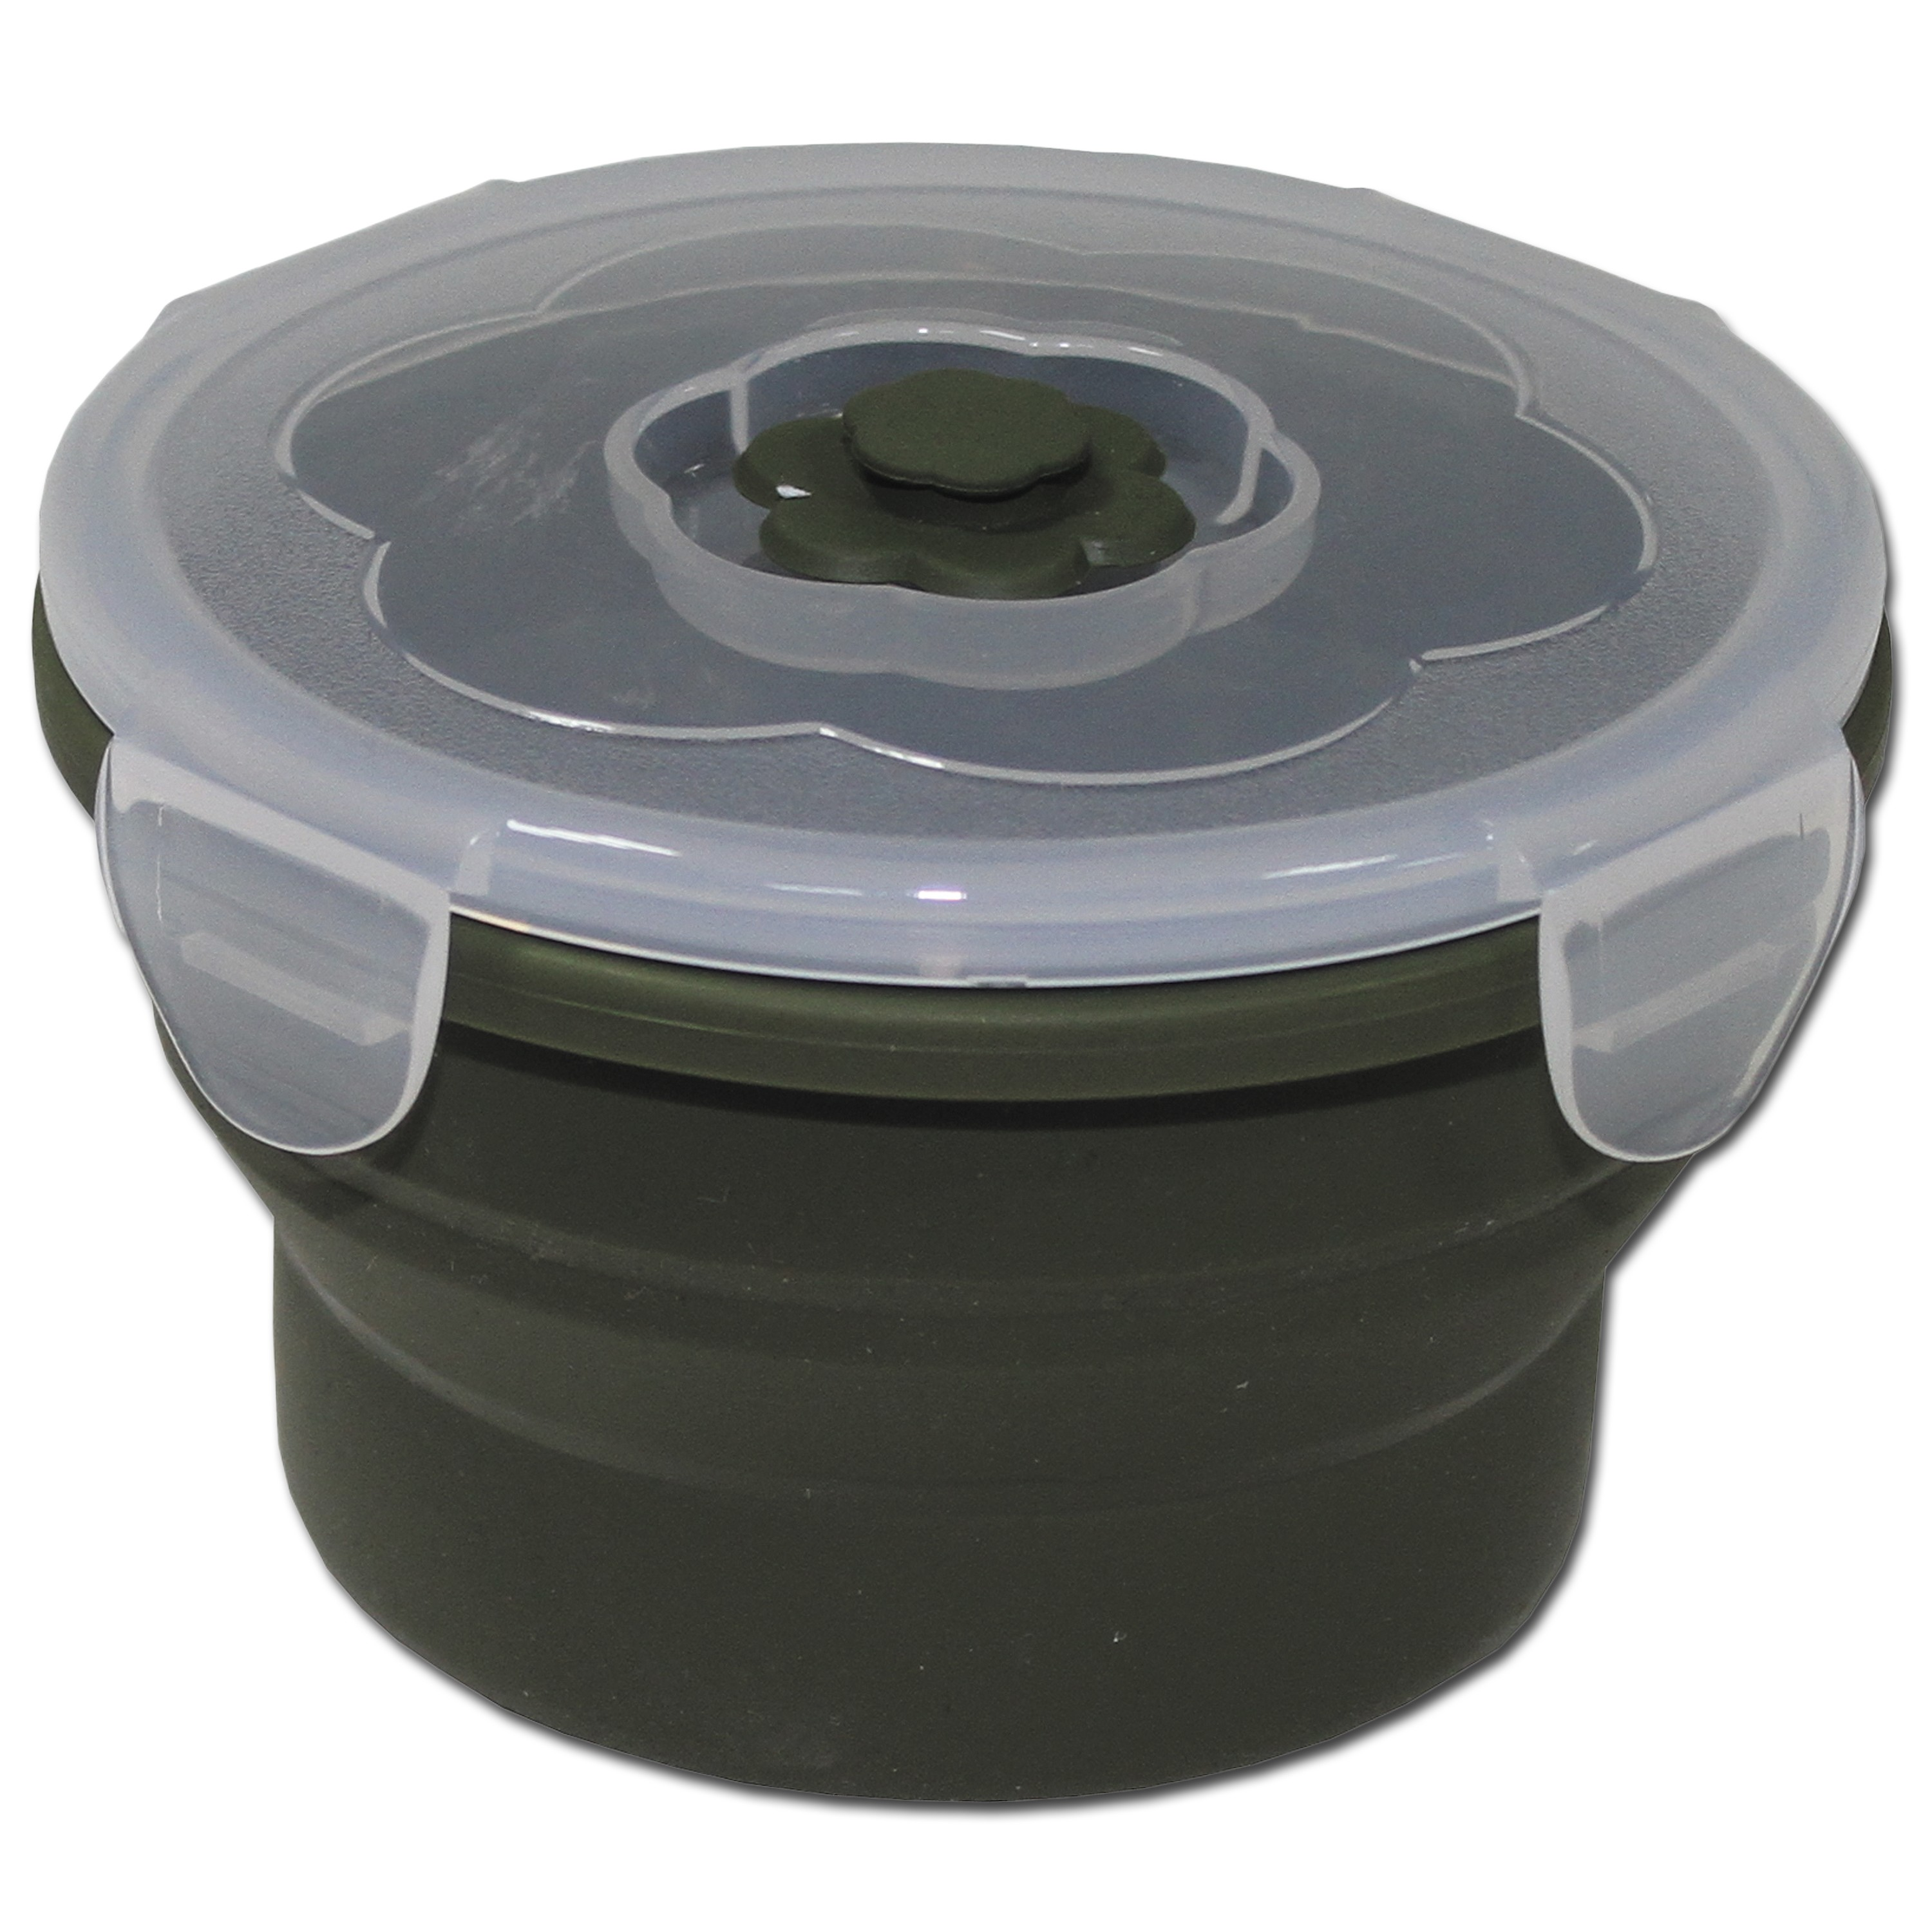 Food Container MFH, foldable 540 ml round olive